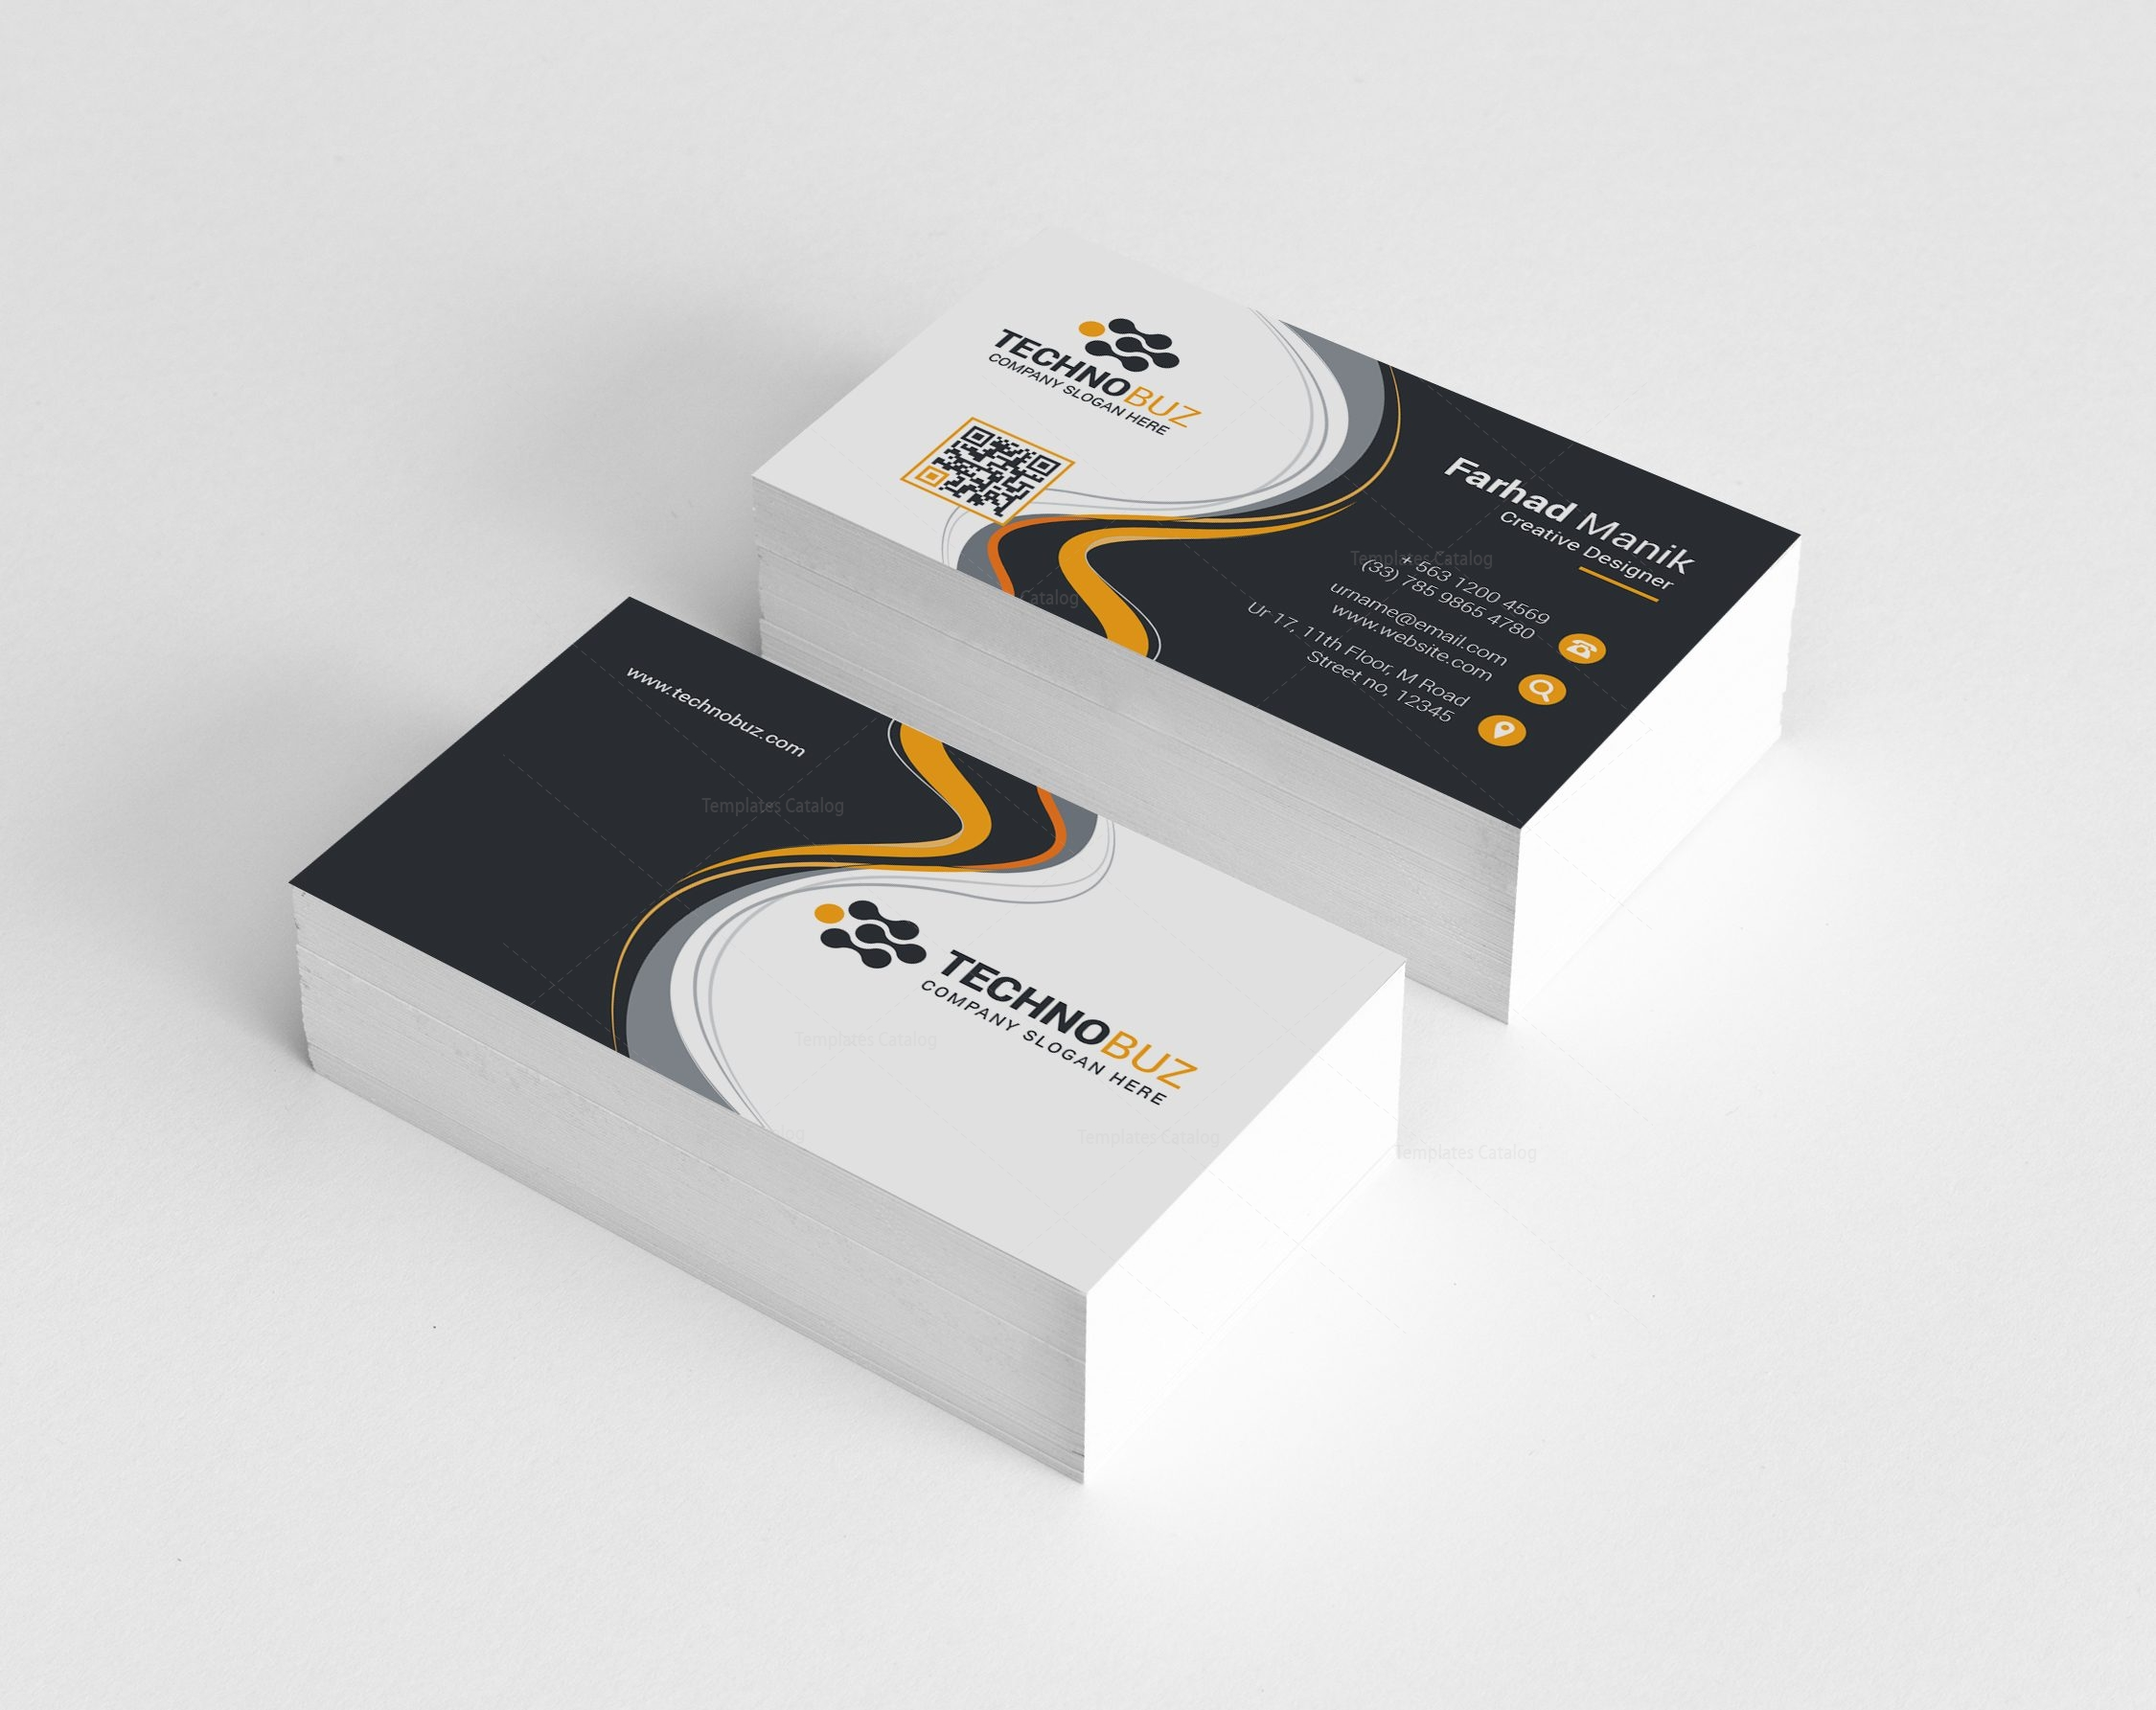 Geopaper do it yourself business cards template best for Geographics business cards templates